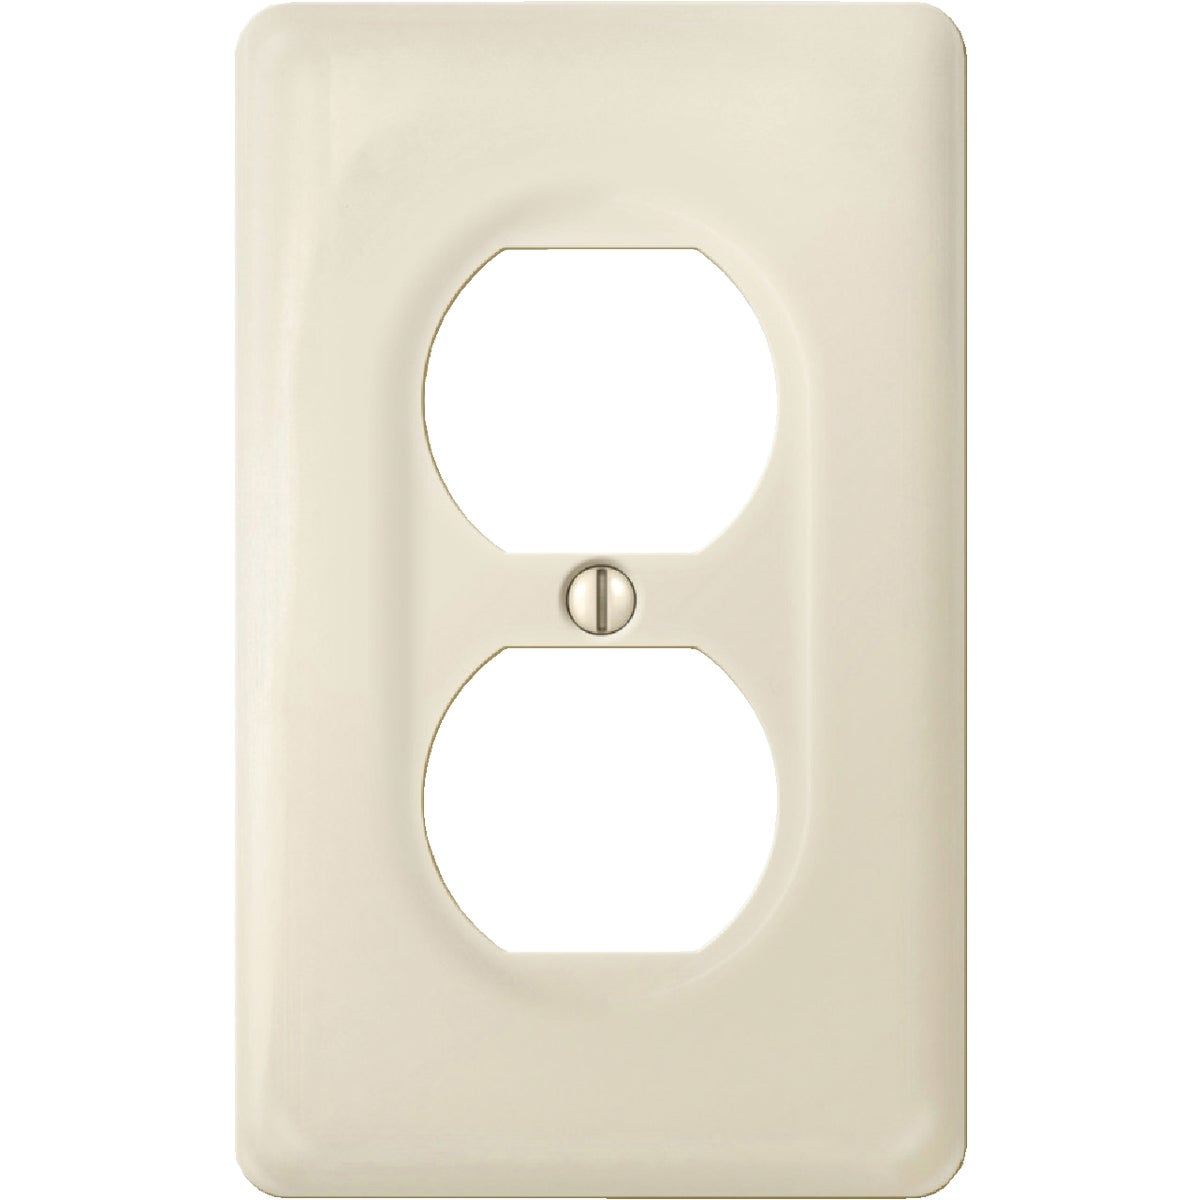 1DUP O BN/PORC WALLPLATE - 988BN by Jackson Deerfield Mf